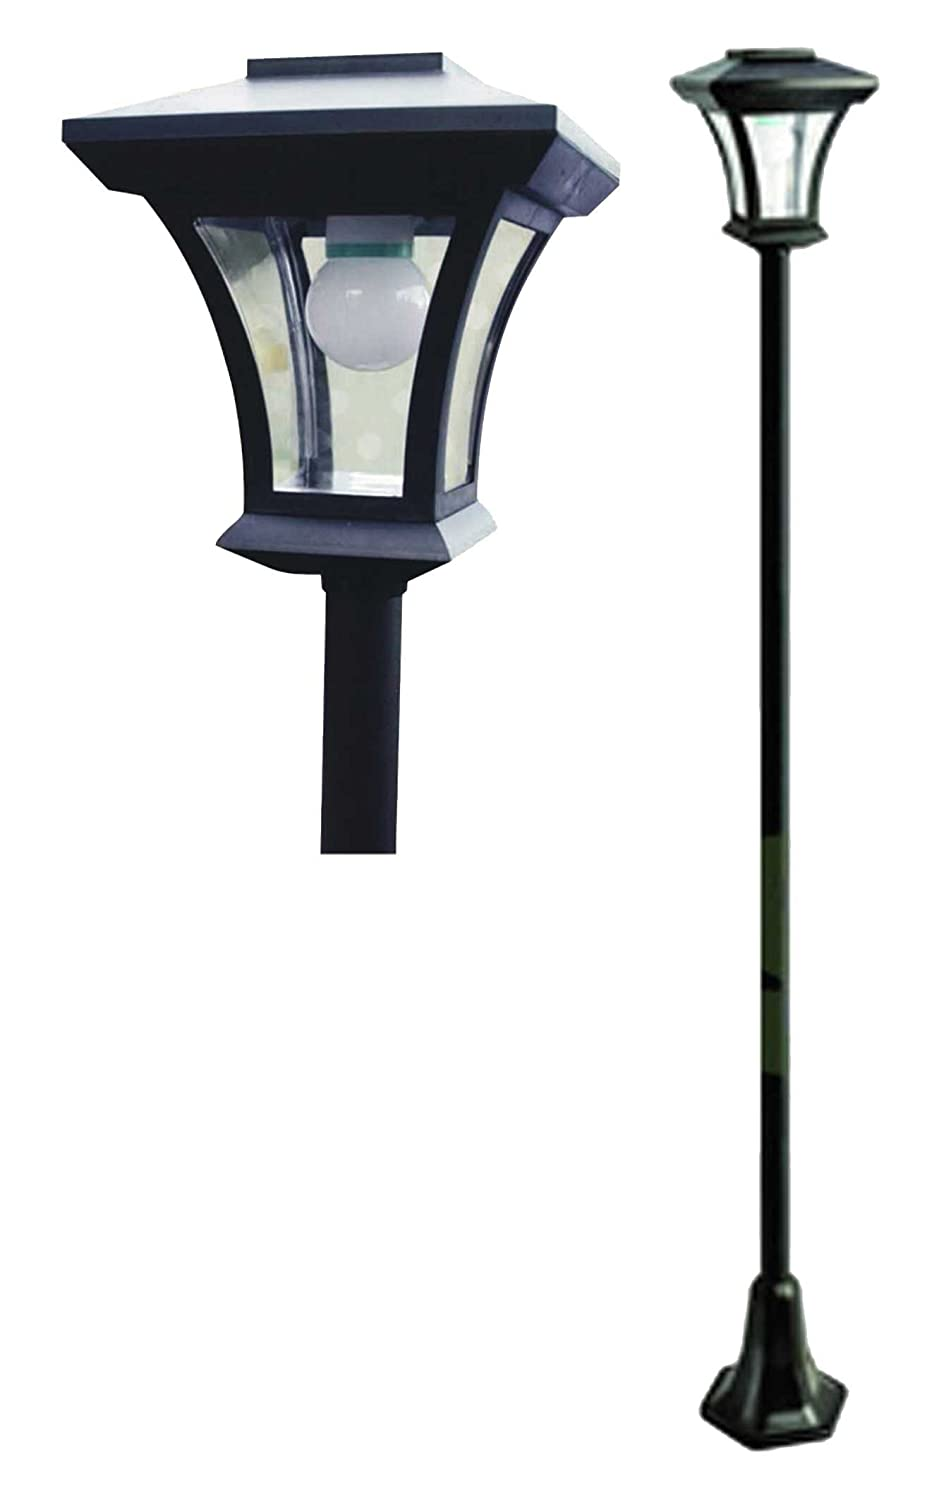 Solar lamp post led lights 166m tall amazon kitchen home aloadofball Image collections